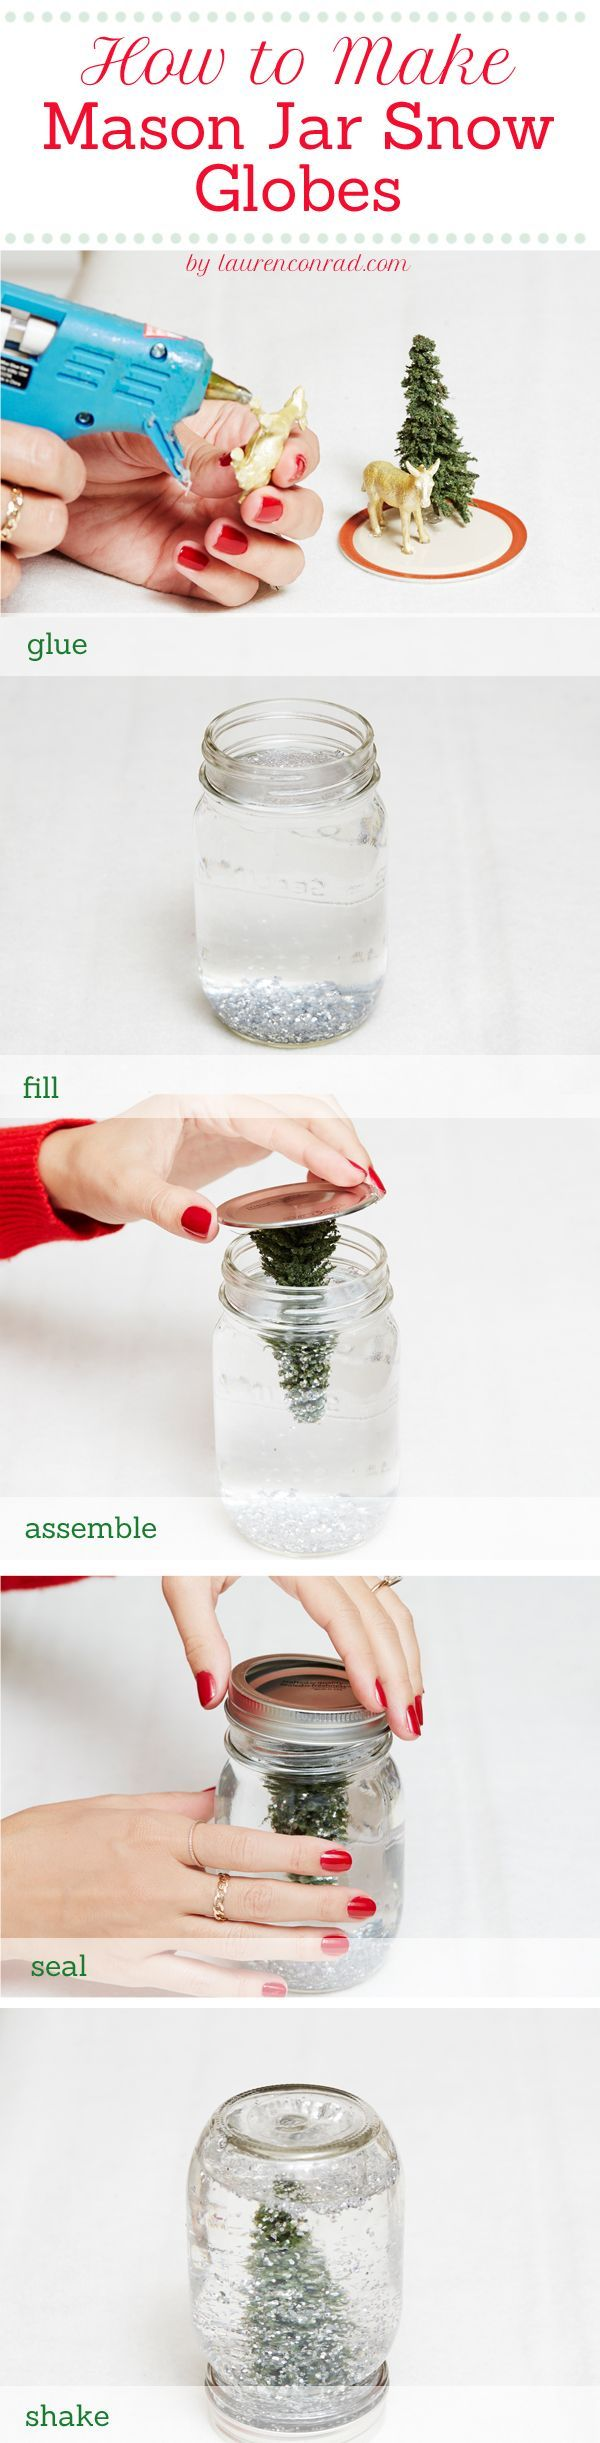 make-jar-snow-globe